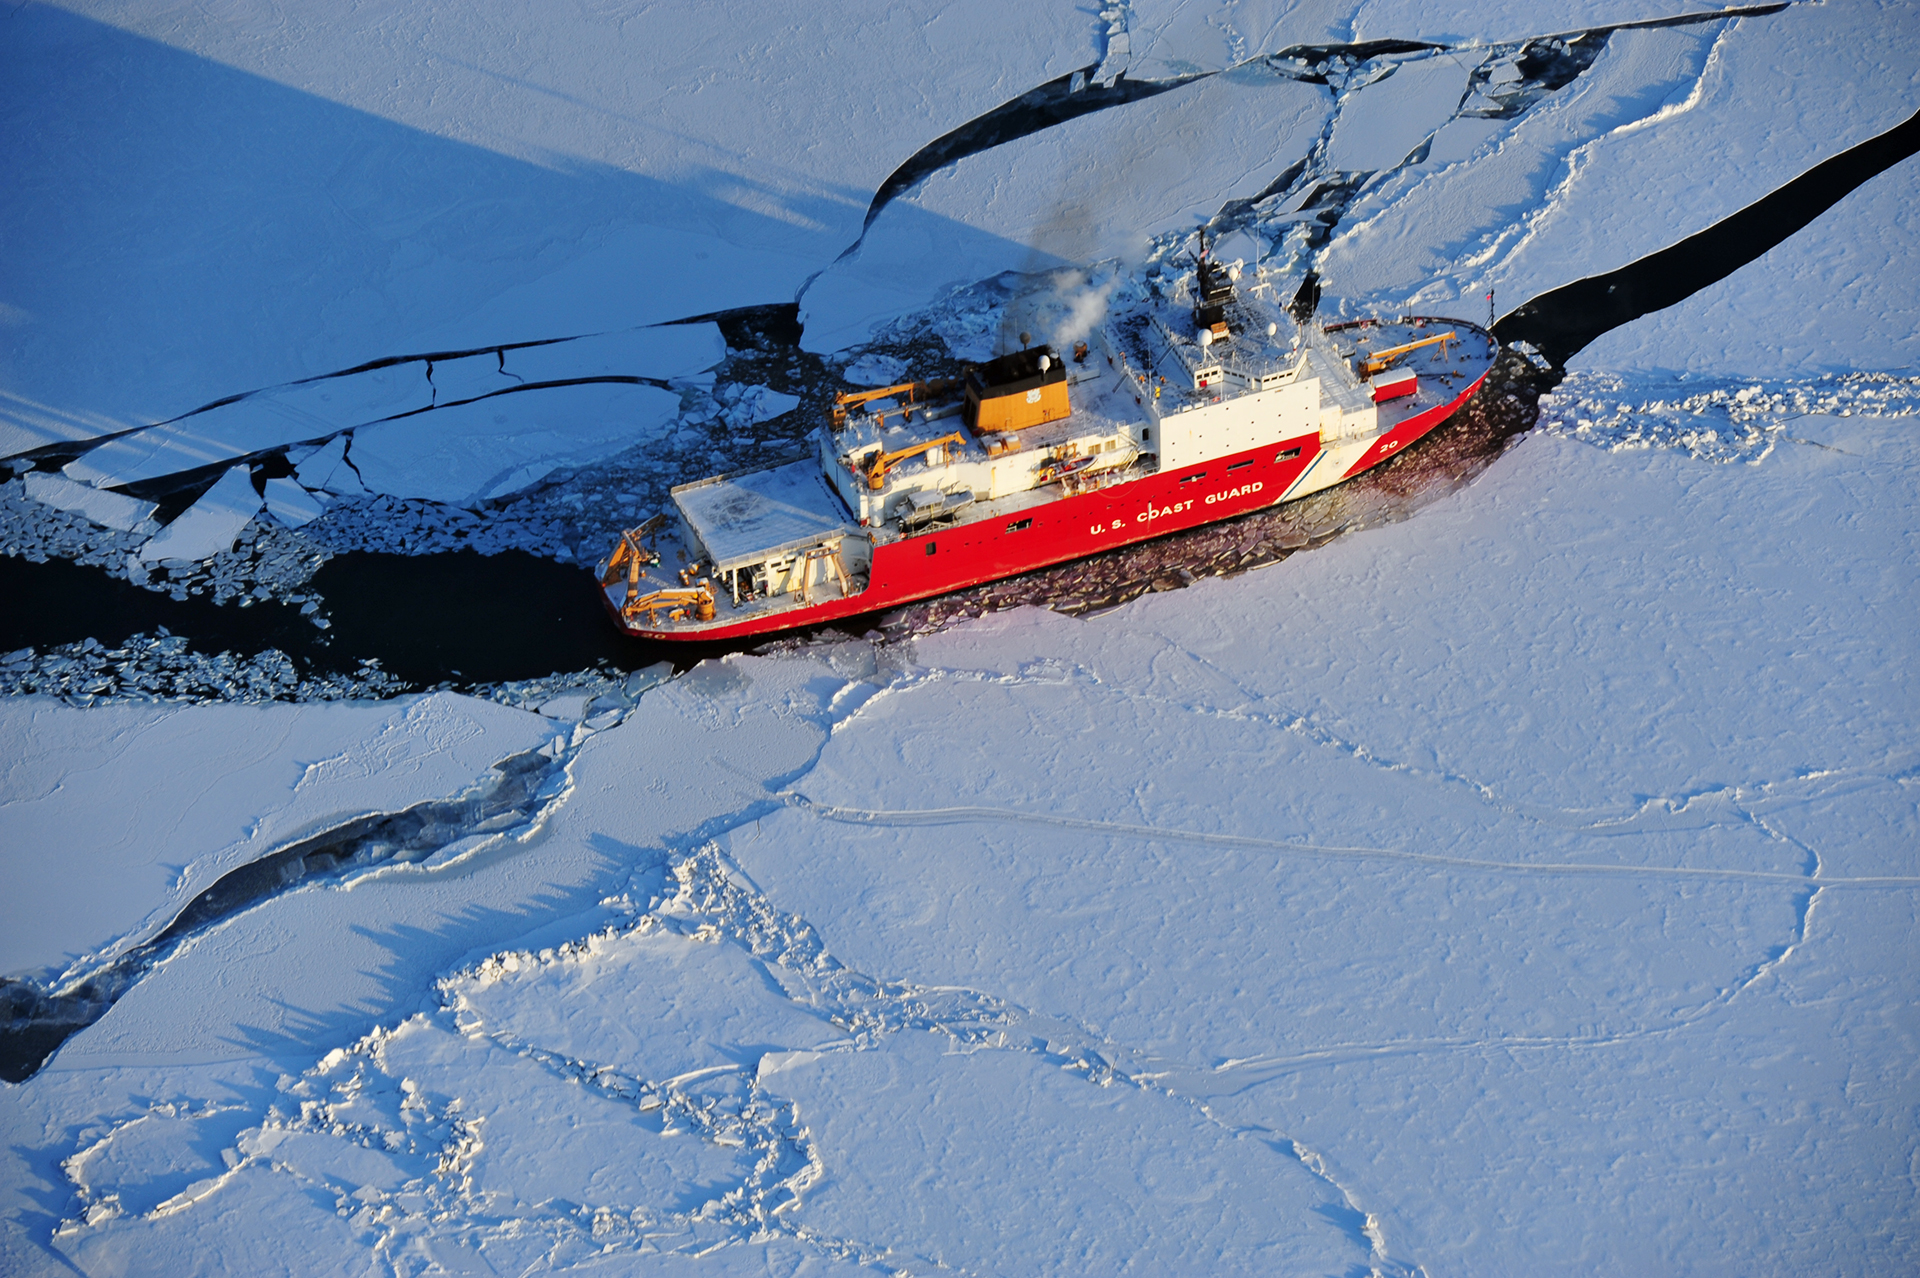 Icebreaker Ski Zukunft Changing Arctic Could Lead To Armed U S Icebreakers In